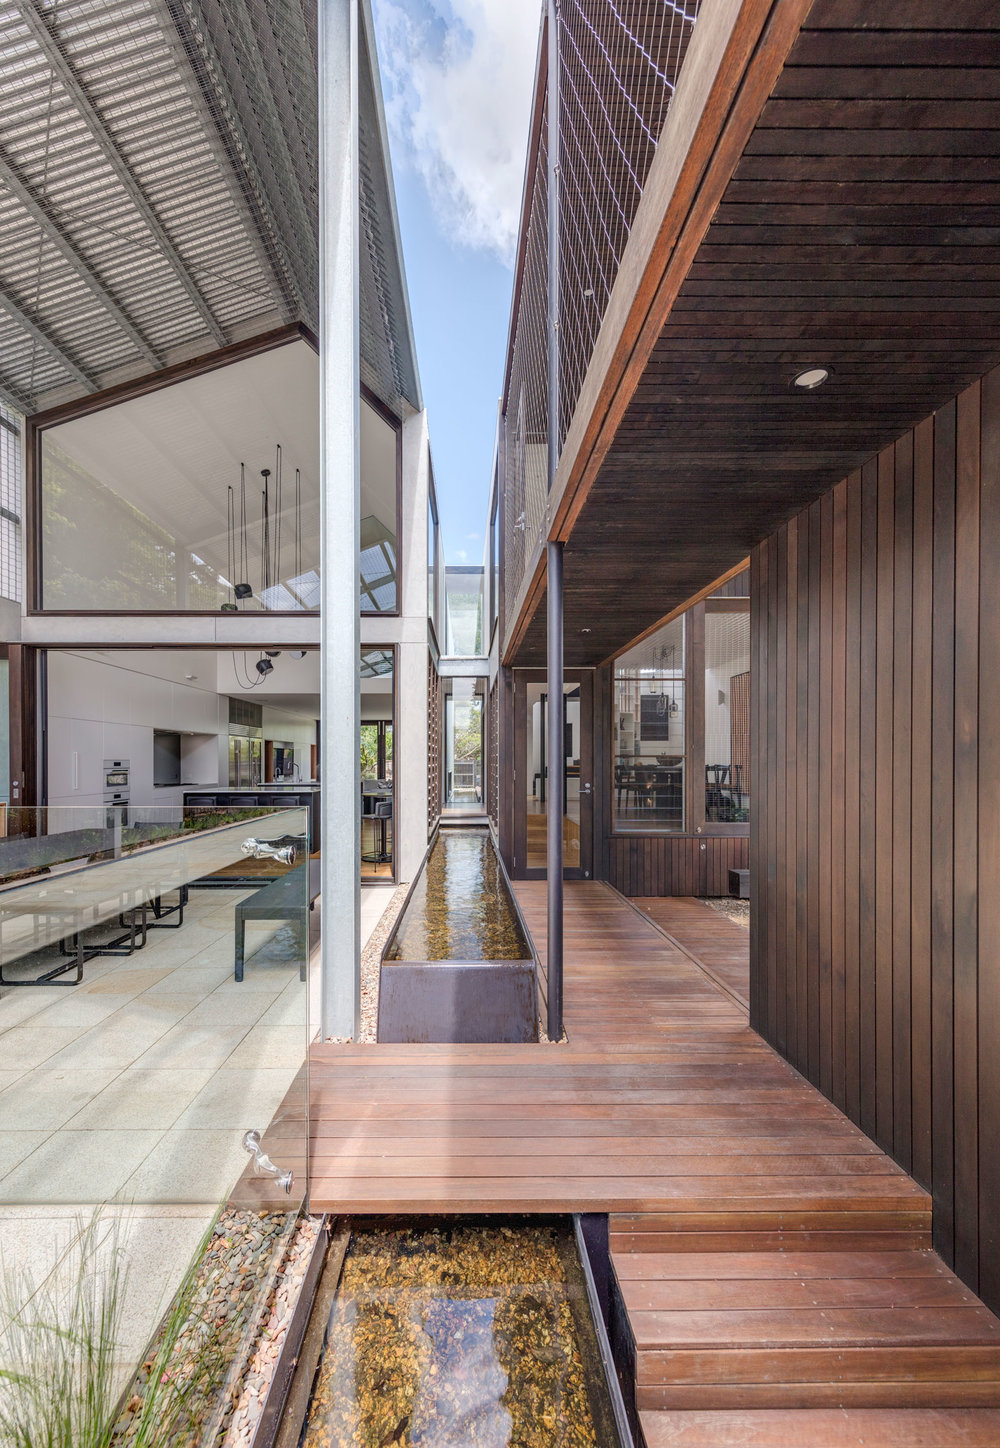 The house is divided into two pavilions by the water feature which provides a focal point, provides ambience and moderates seasonal temperature variations.